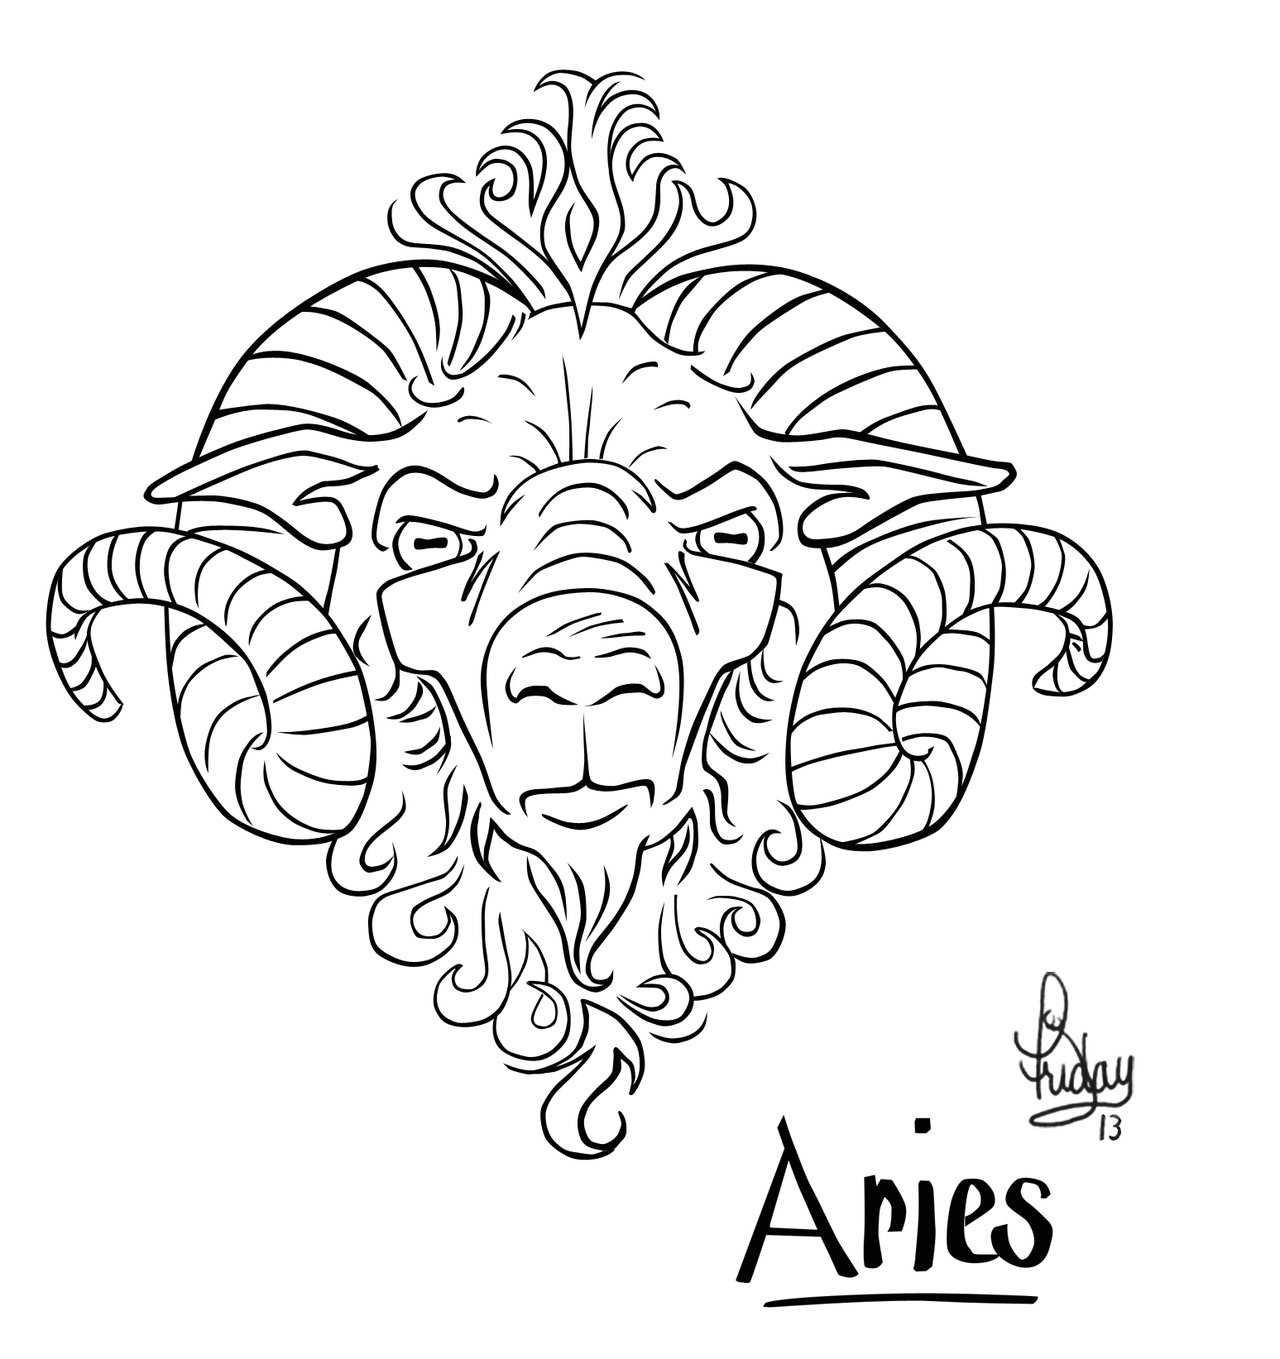 829af9e3e Aries Goat Head Tattoo Design